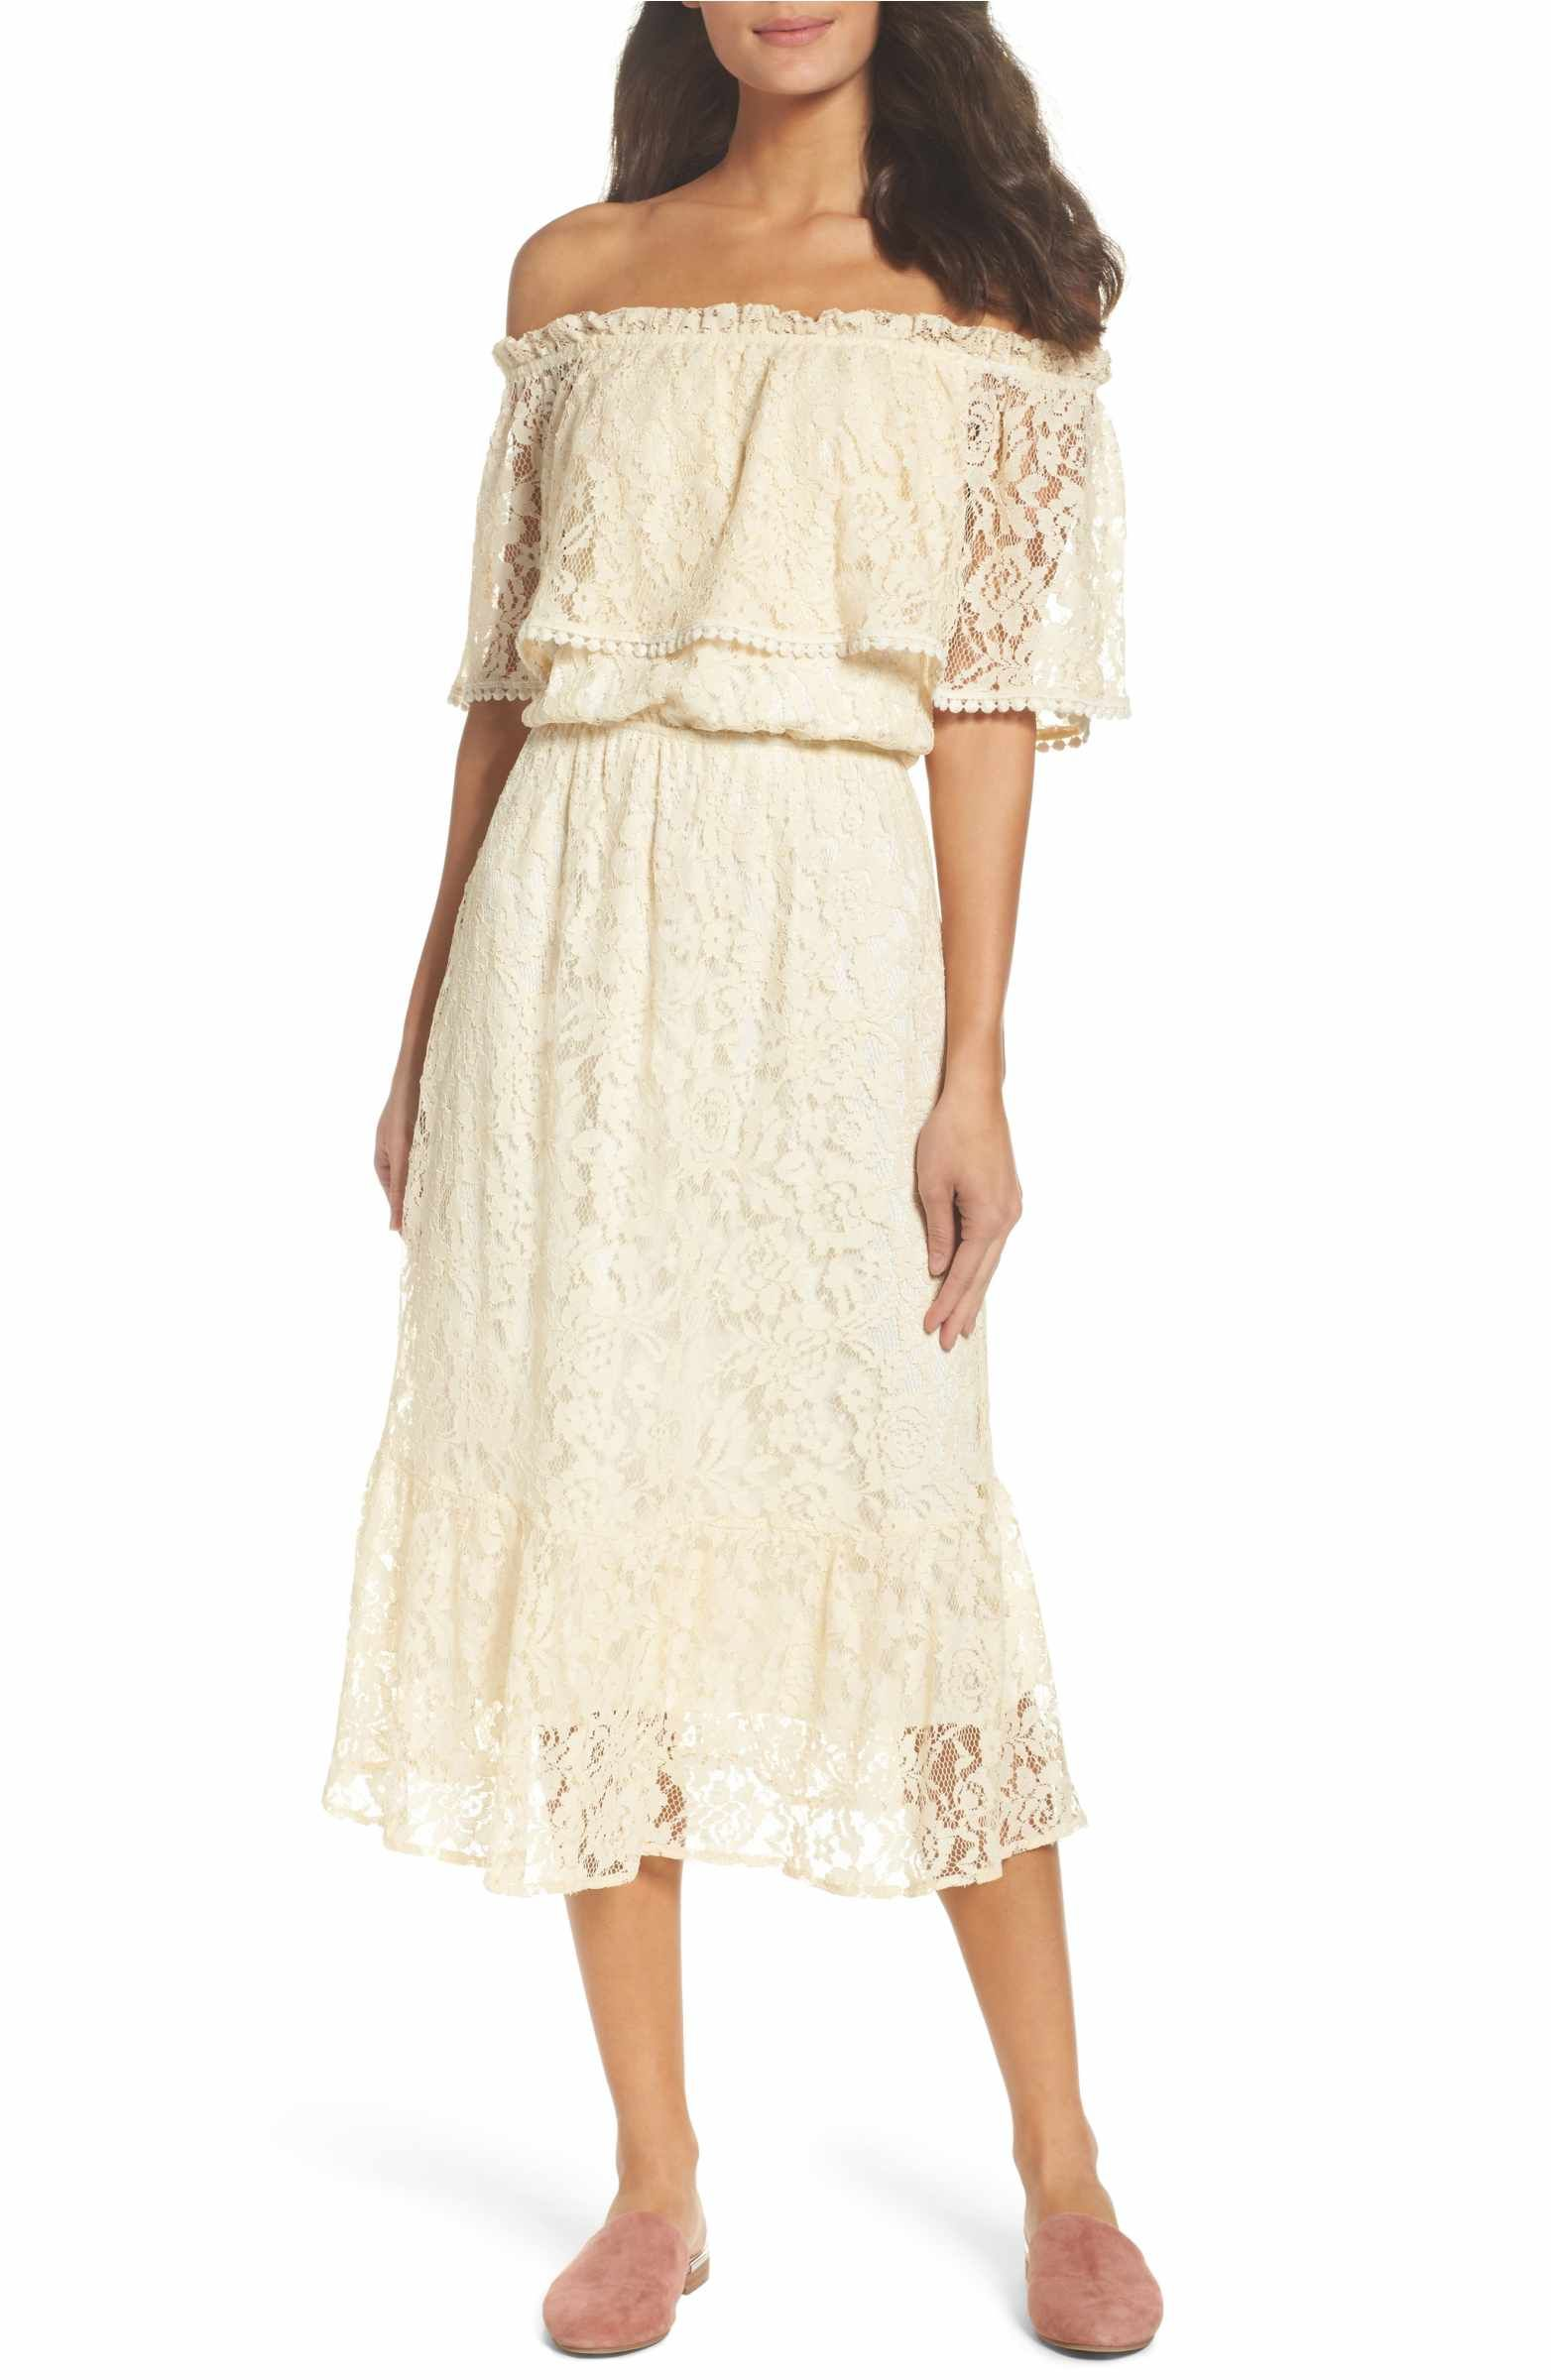 Thurley wedding dress  Popover Midi Dress  Midi dresses Nordstrom and Shoulder